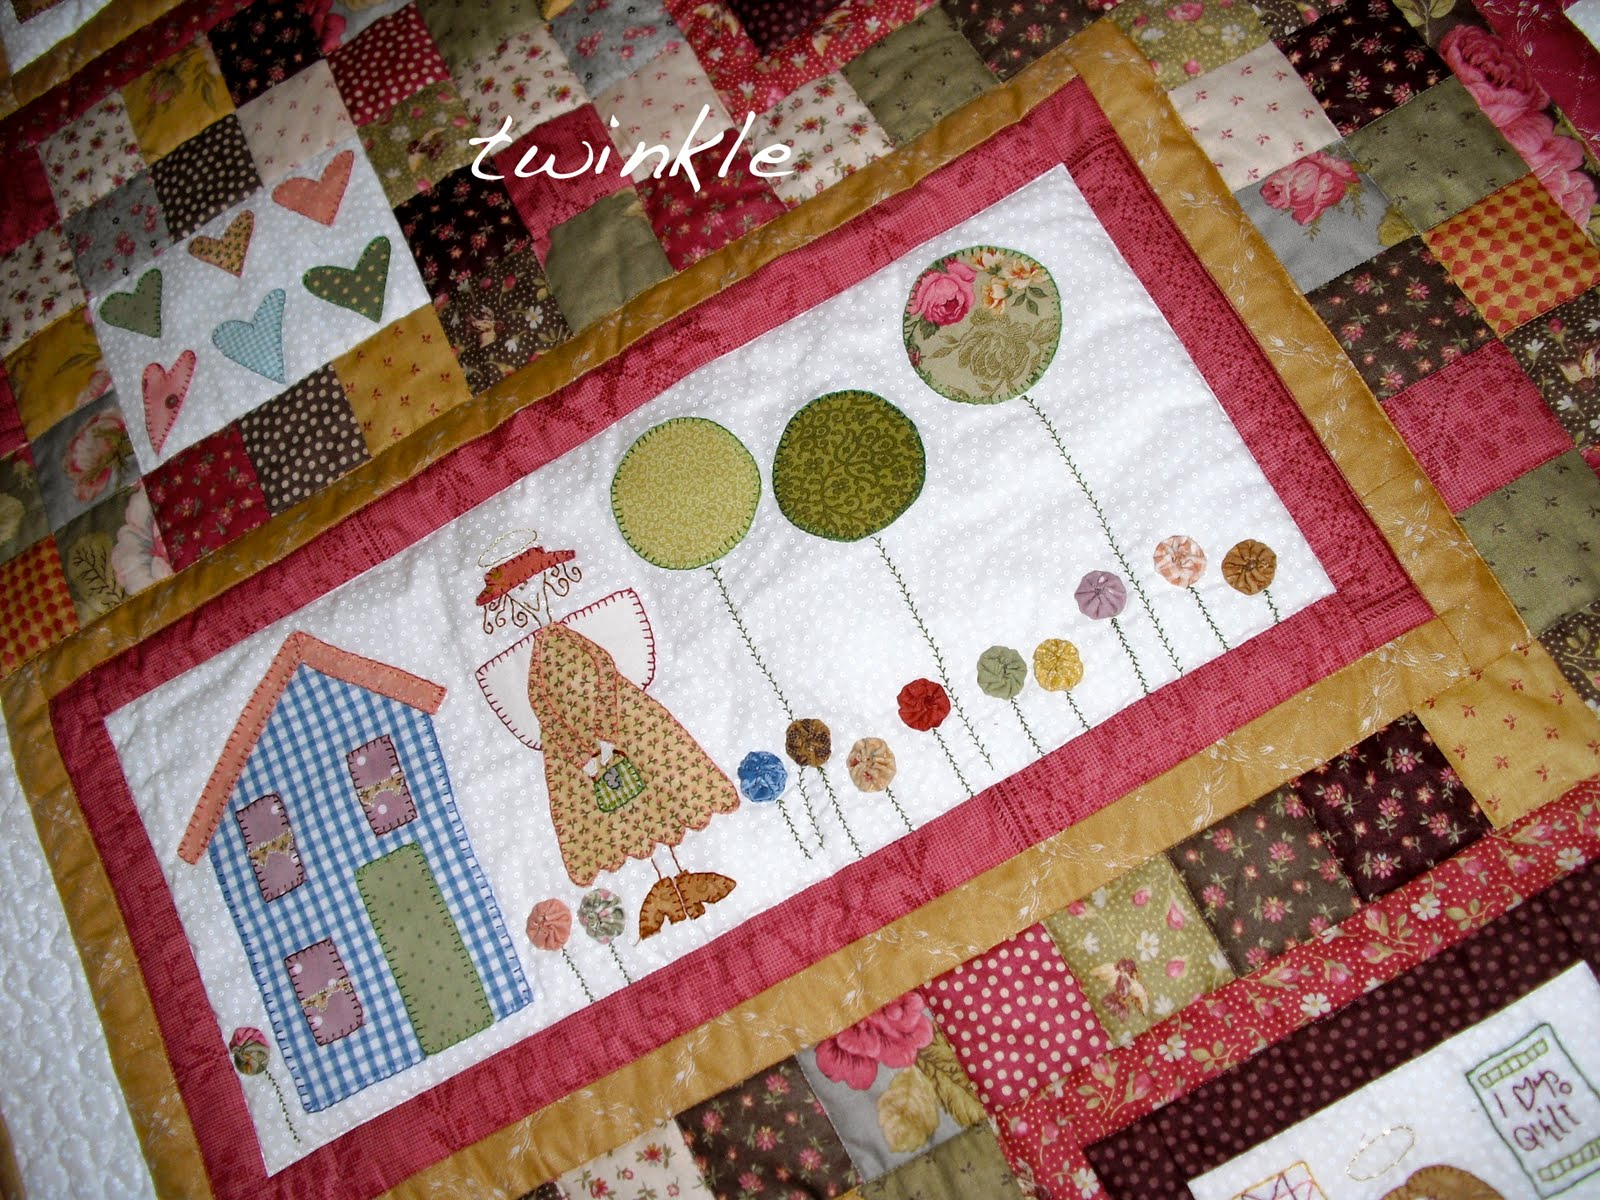 Dise os colchas patchwork imagui - Disenos patchwork para colchas ...